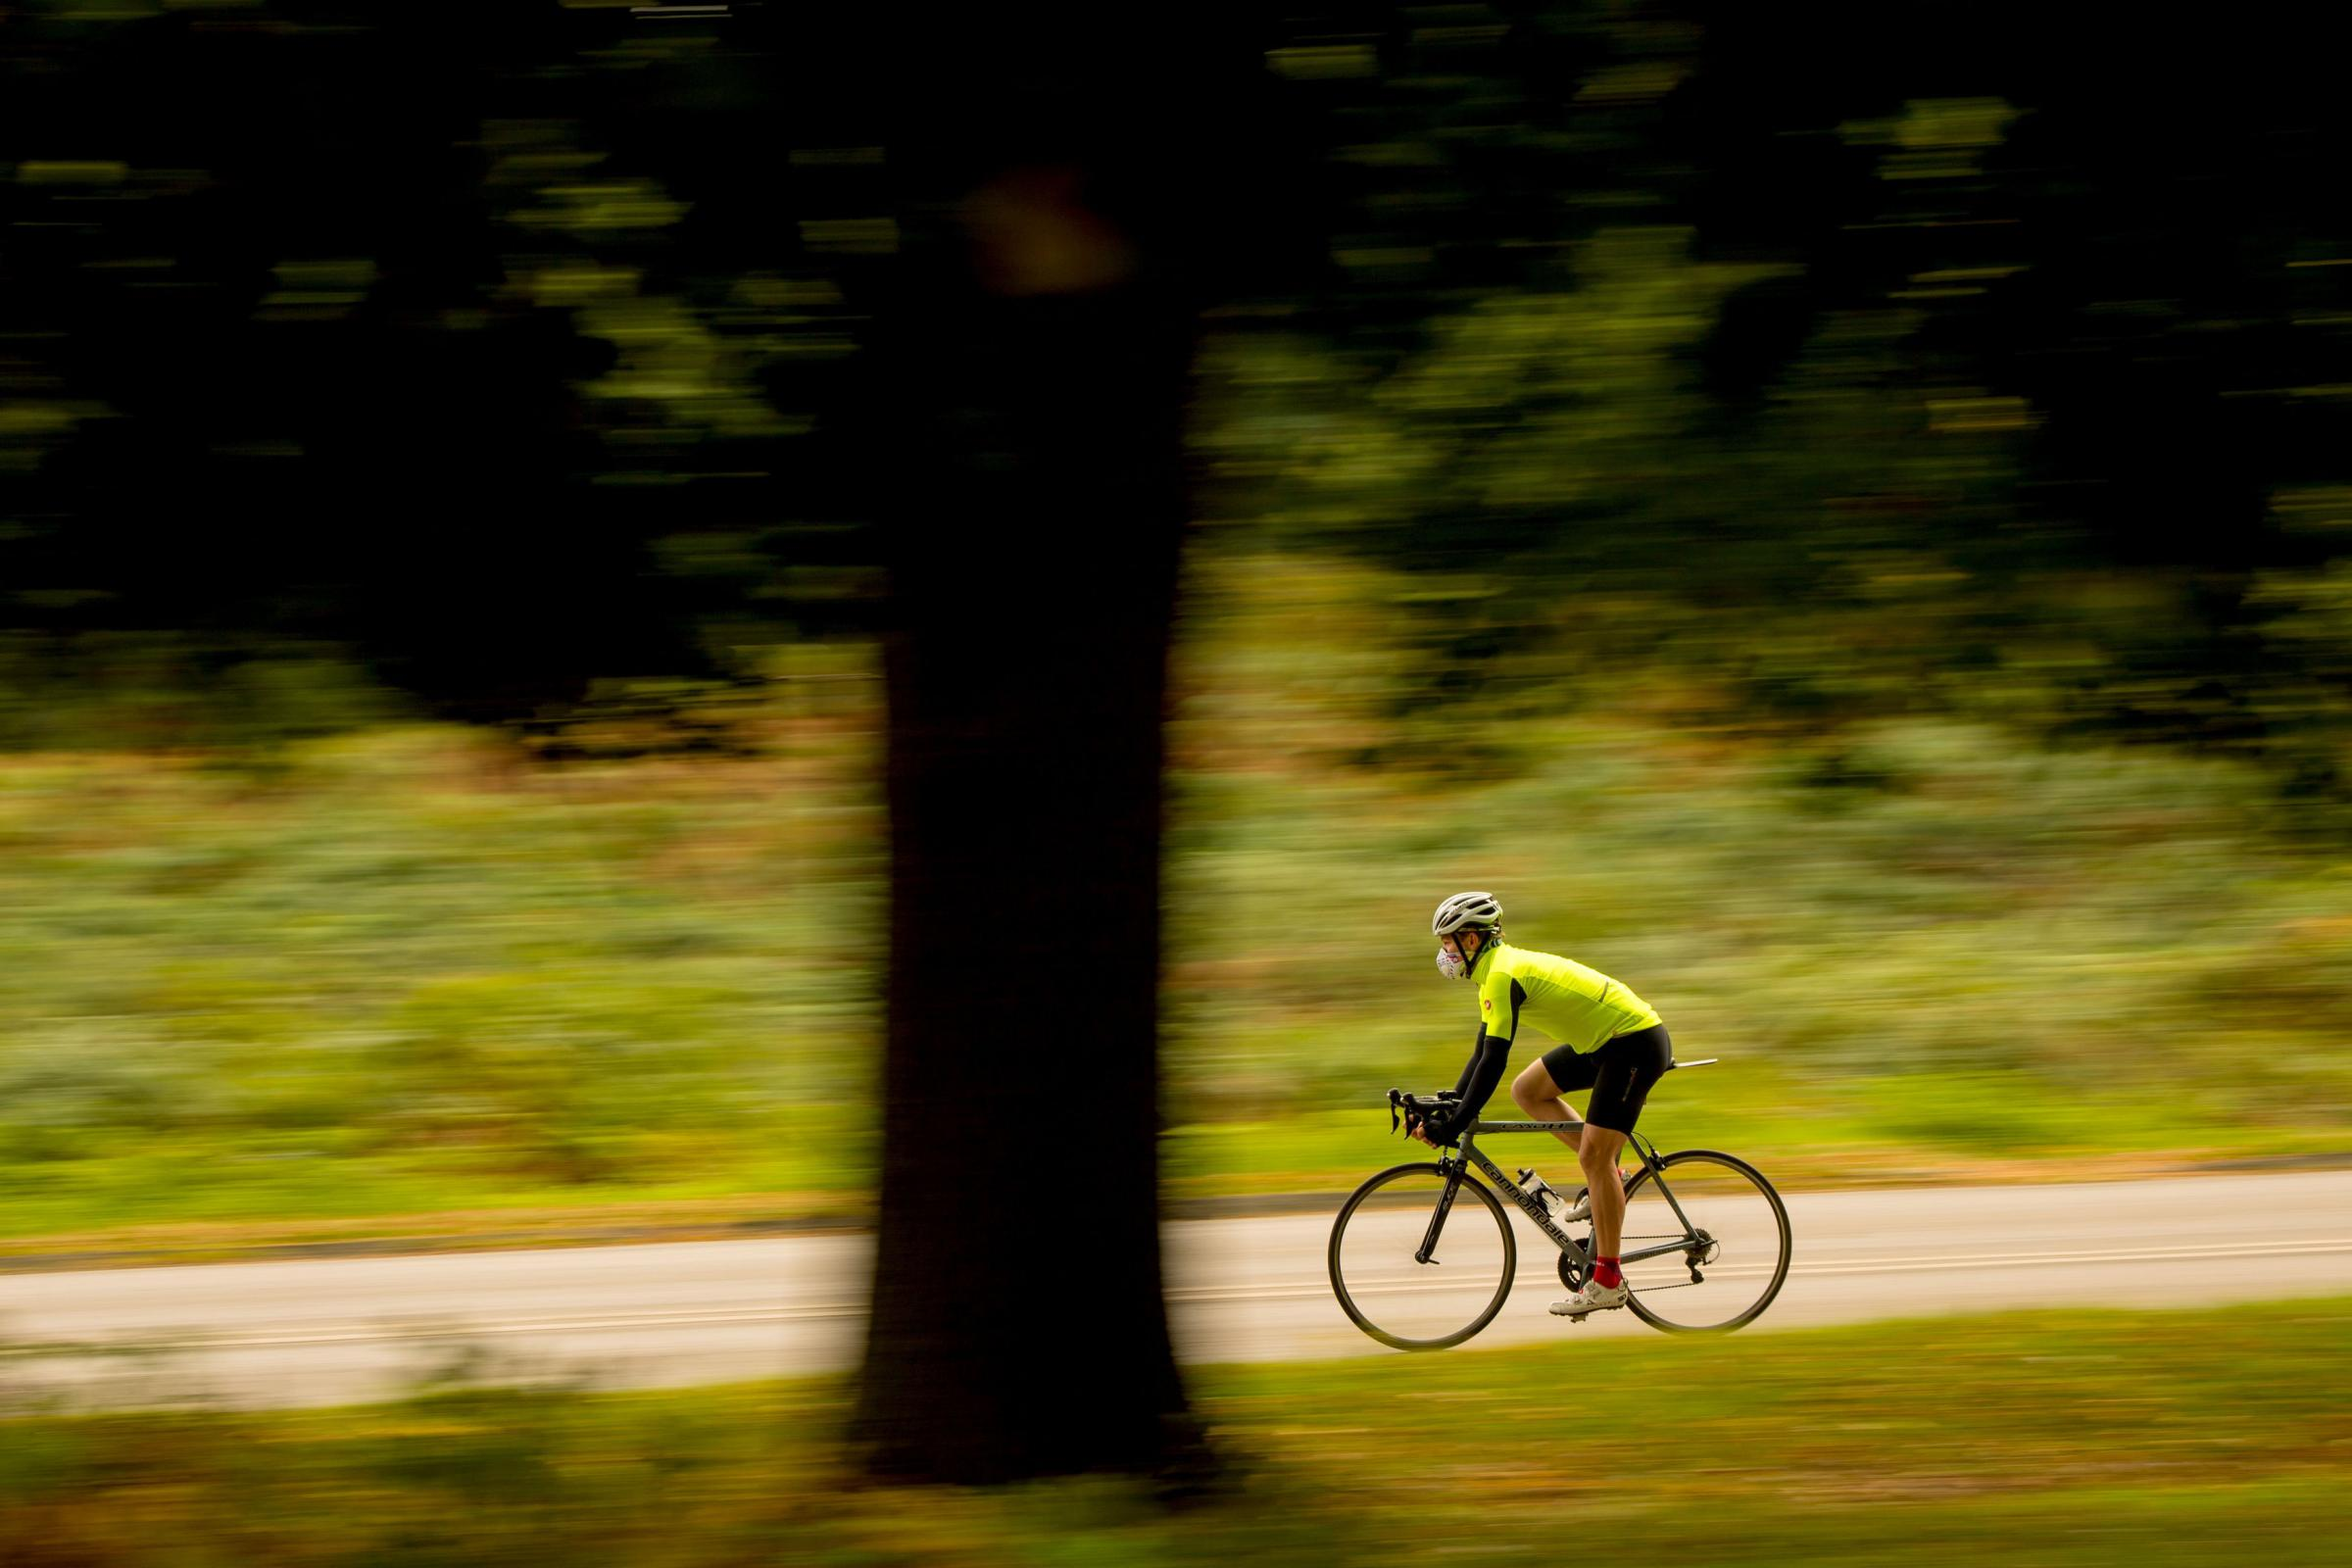 It should be compulsory for cyclists to wear hi-vis clothing